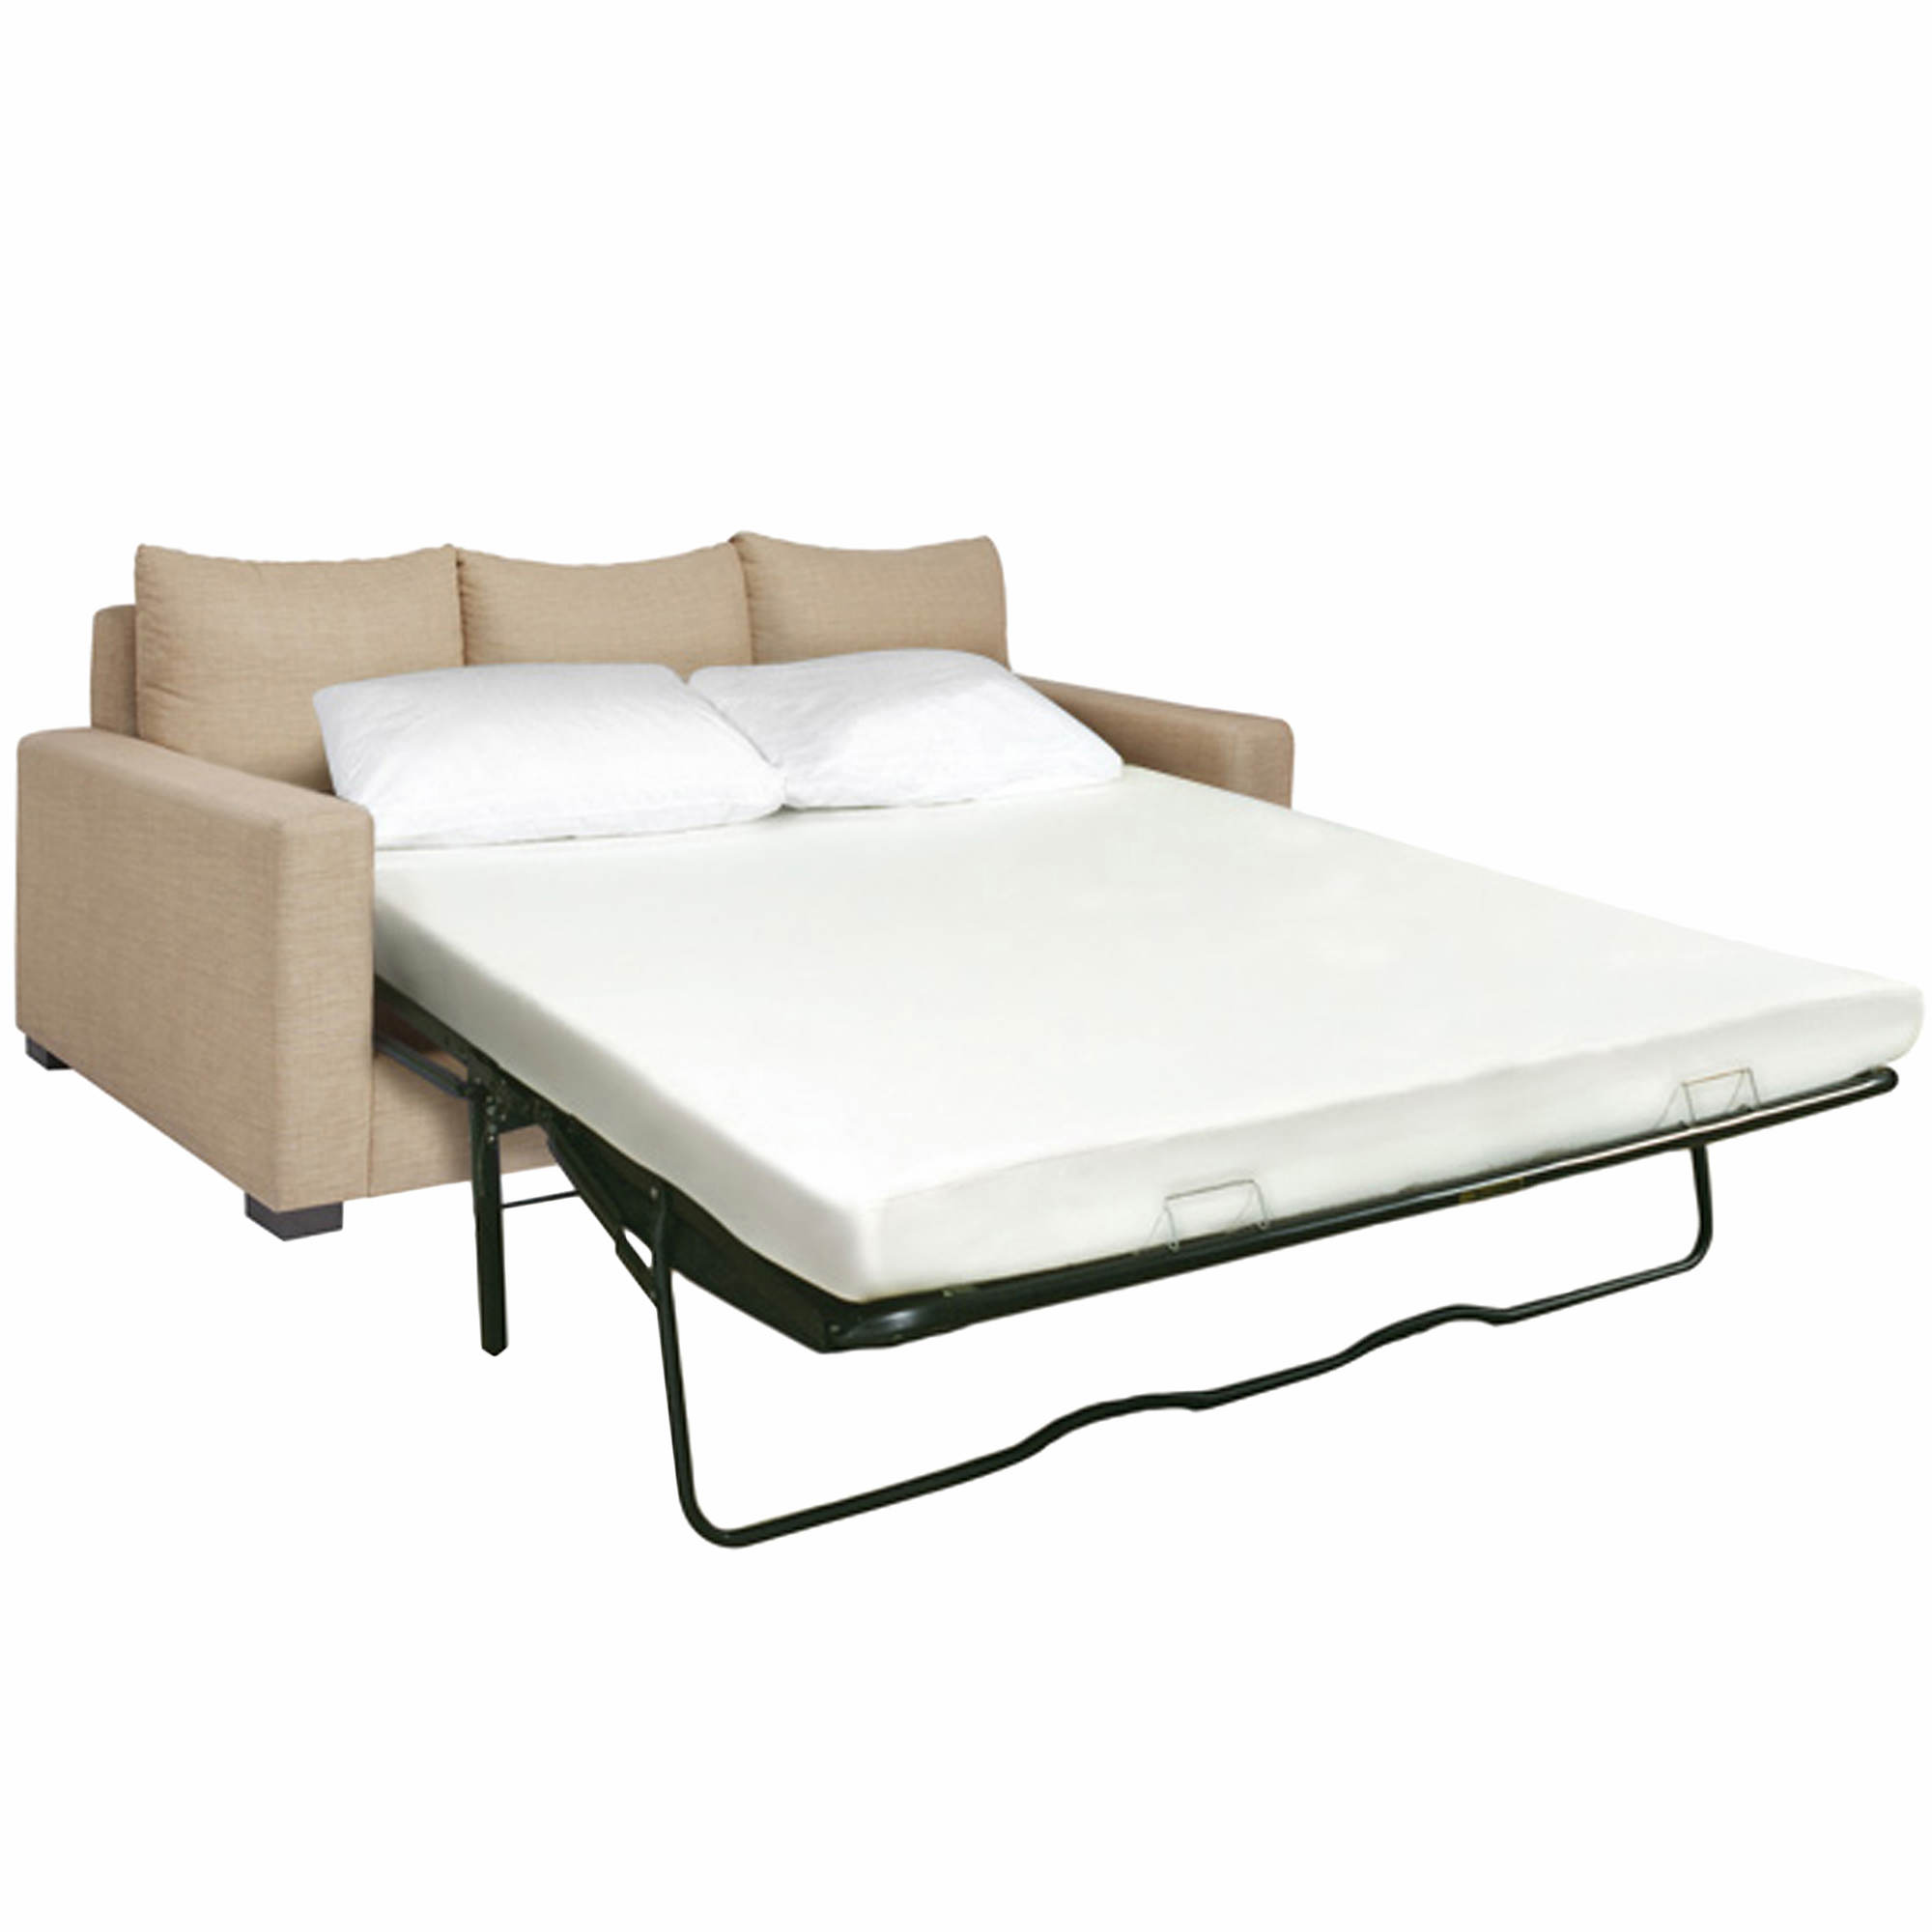 Cradlesoft axiom i full size sleep sofa replacement for Sofa bed replacement mattress